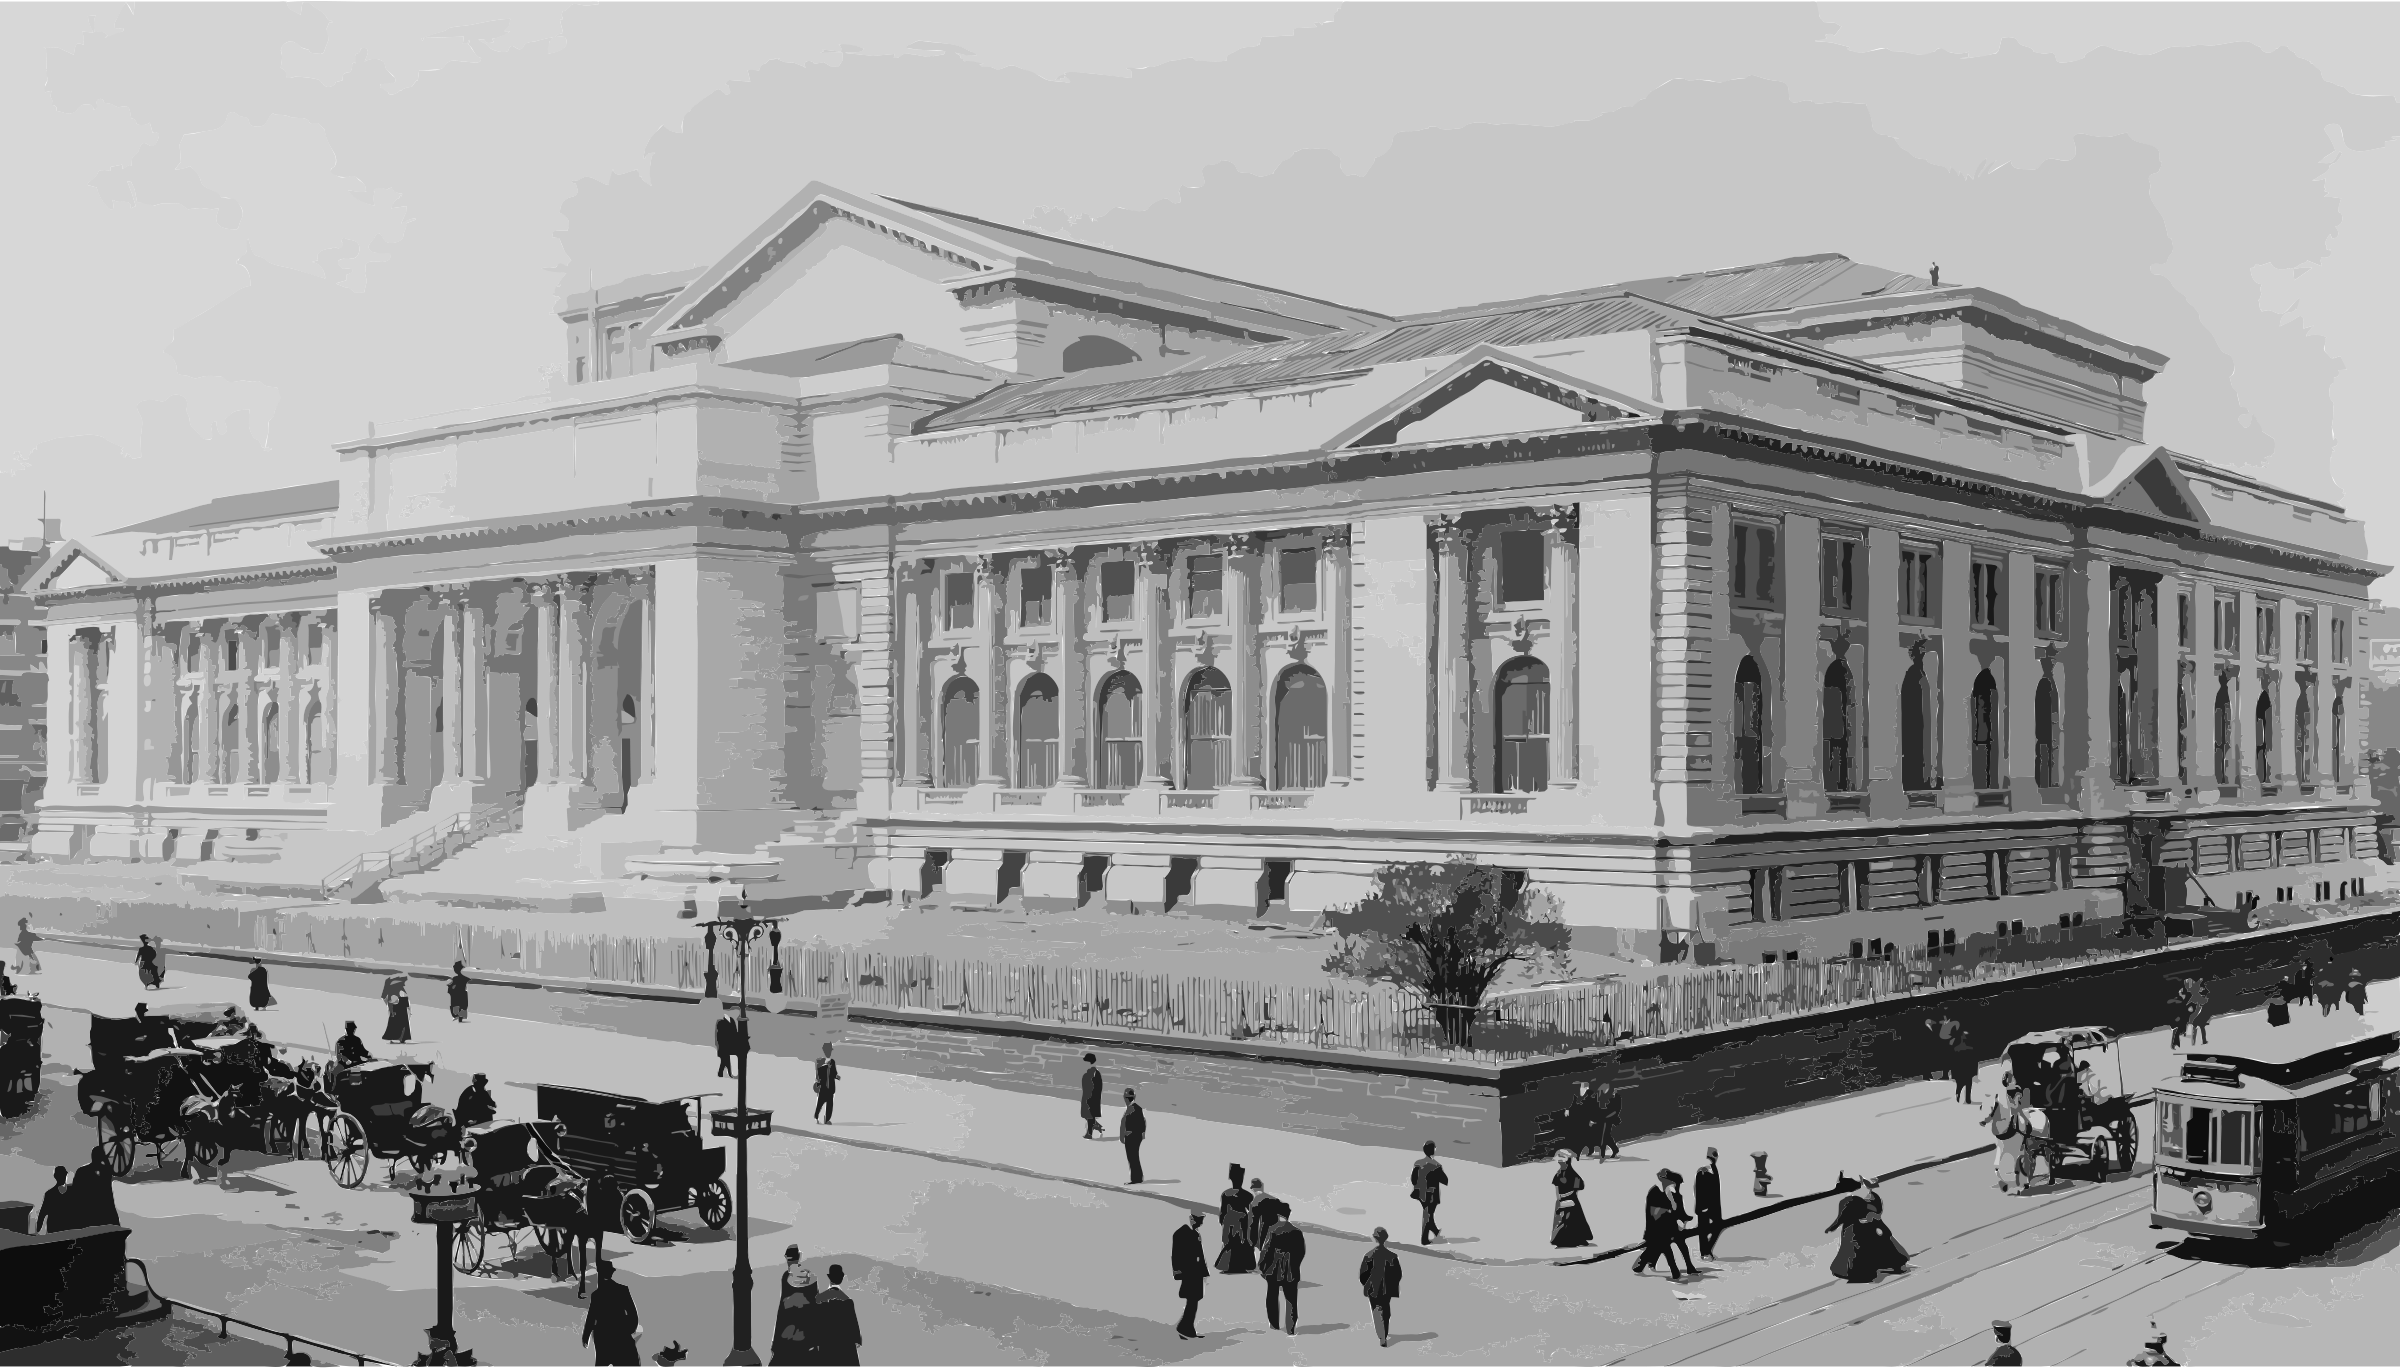 New York Public Library 1908c by 3wt1f5+ceucmedqy949o